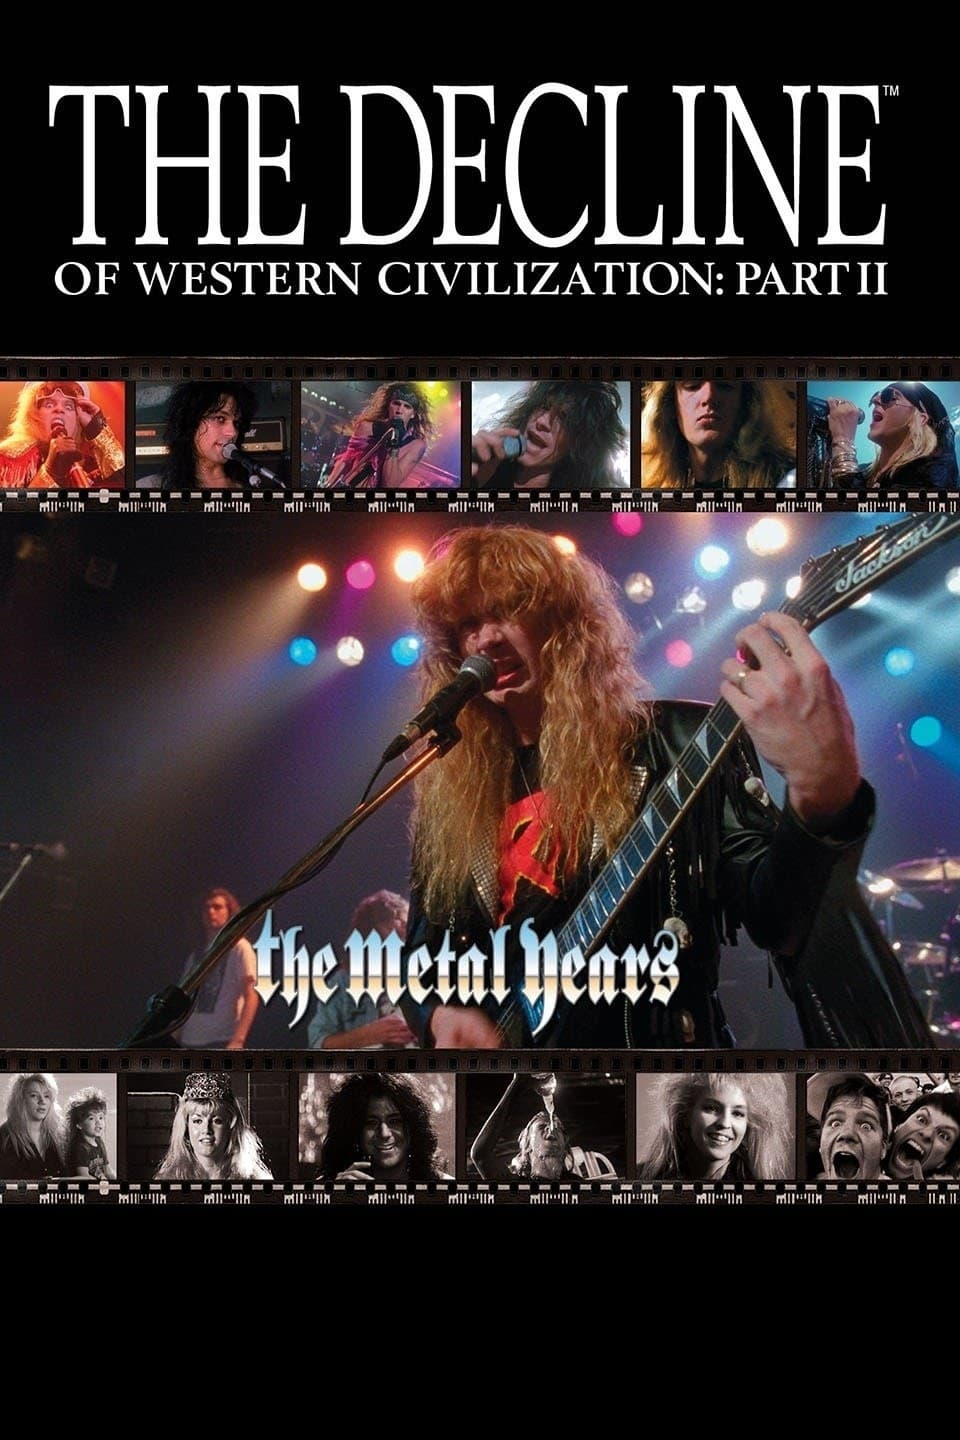 The Decline of Western Civilization Part II: The Metal Years Movie Streaming Online